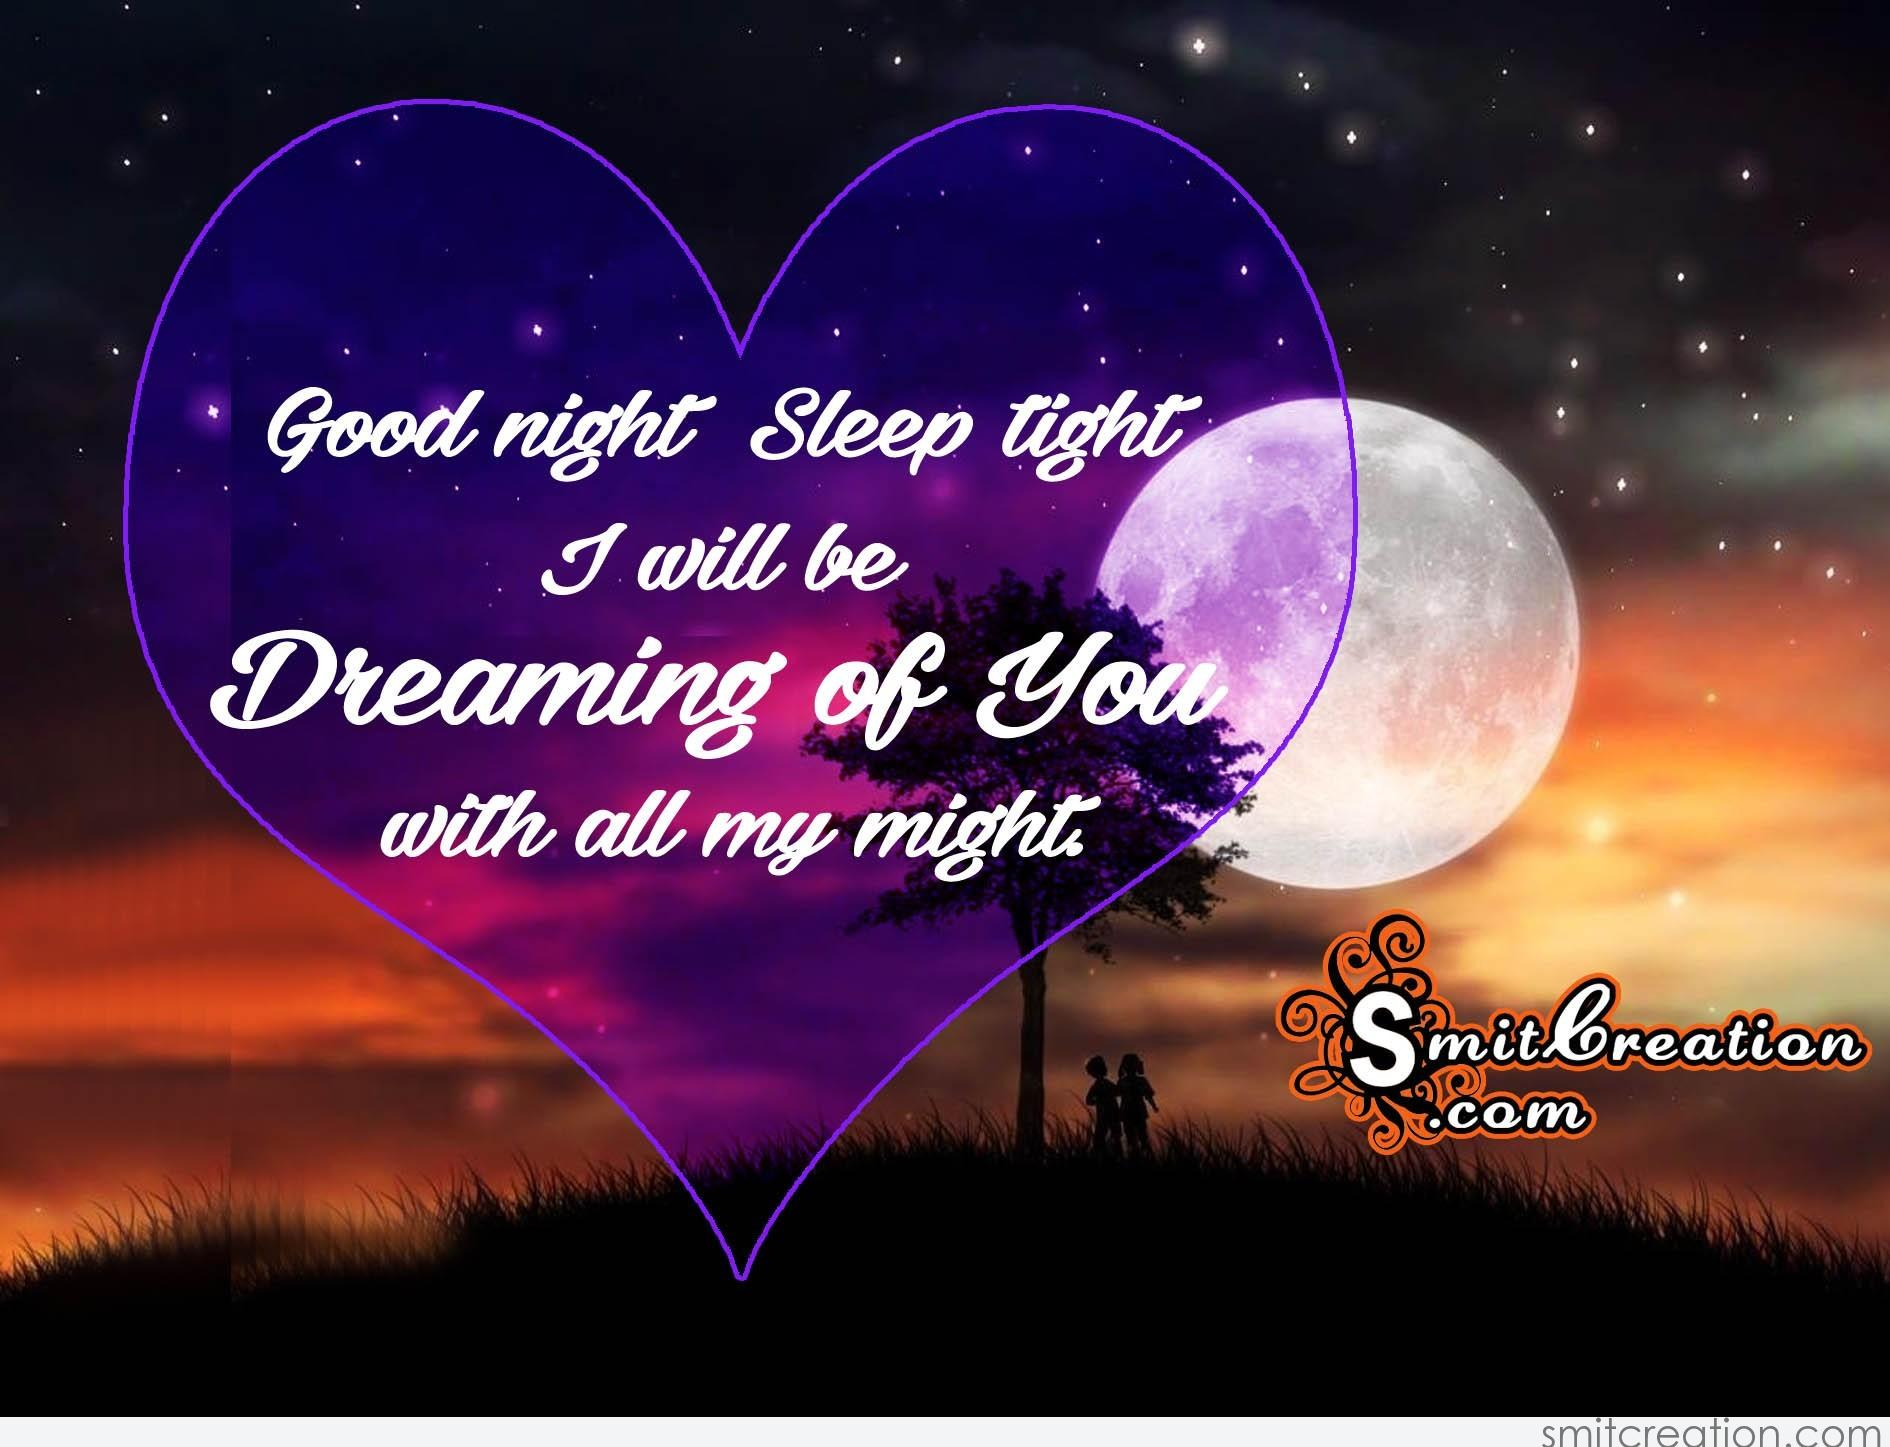 good night sleep tight i will be dreaming of you with all my might